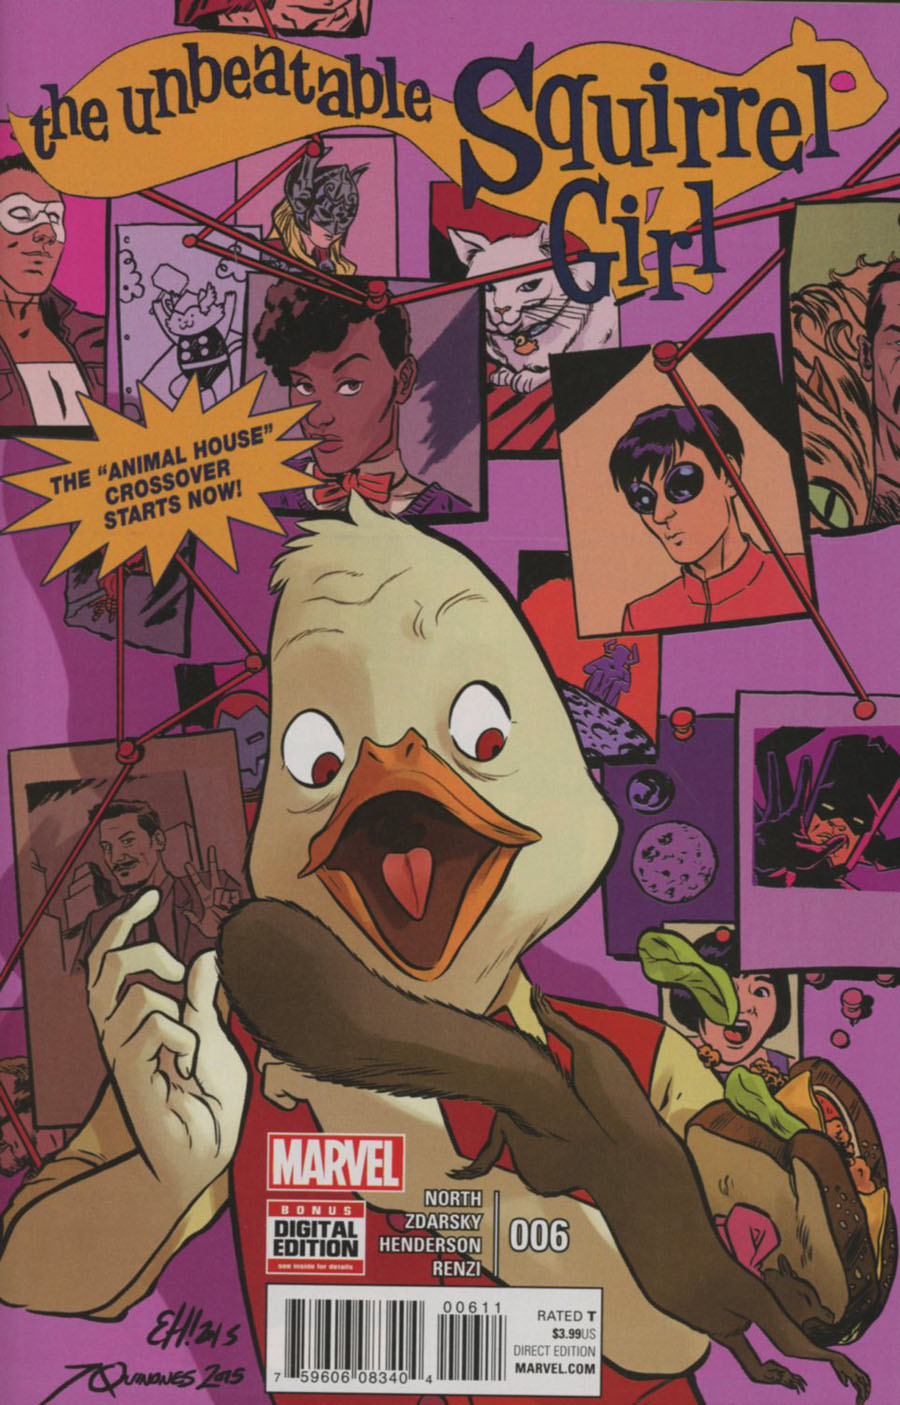 Unbeatable Squirrel Girl Vol 2 #6 Cover A Regular Erica Henderson & Joe Quinones Cover (Animal House Part 1)